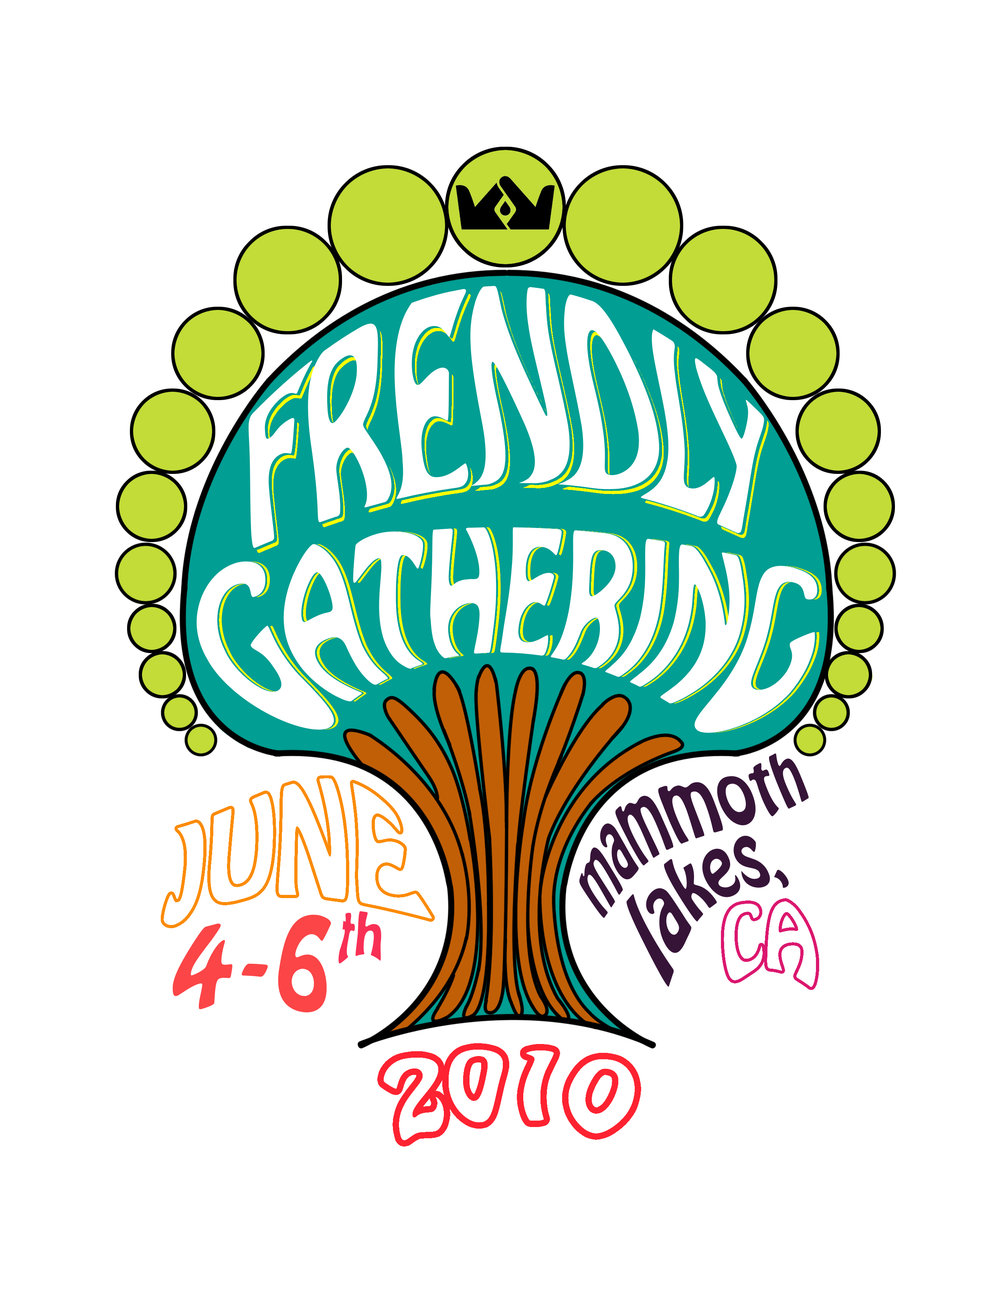 frendly gathering tee.jpg